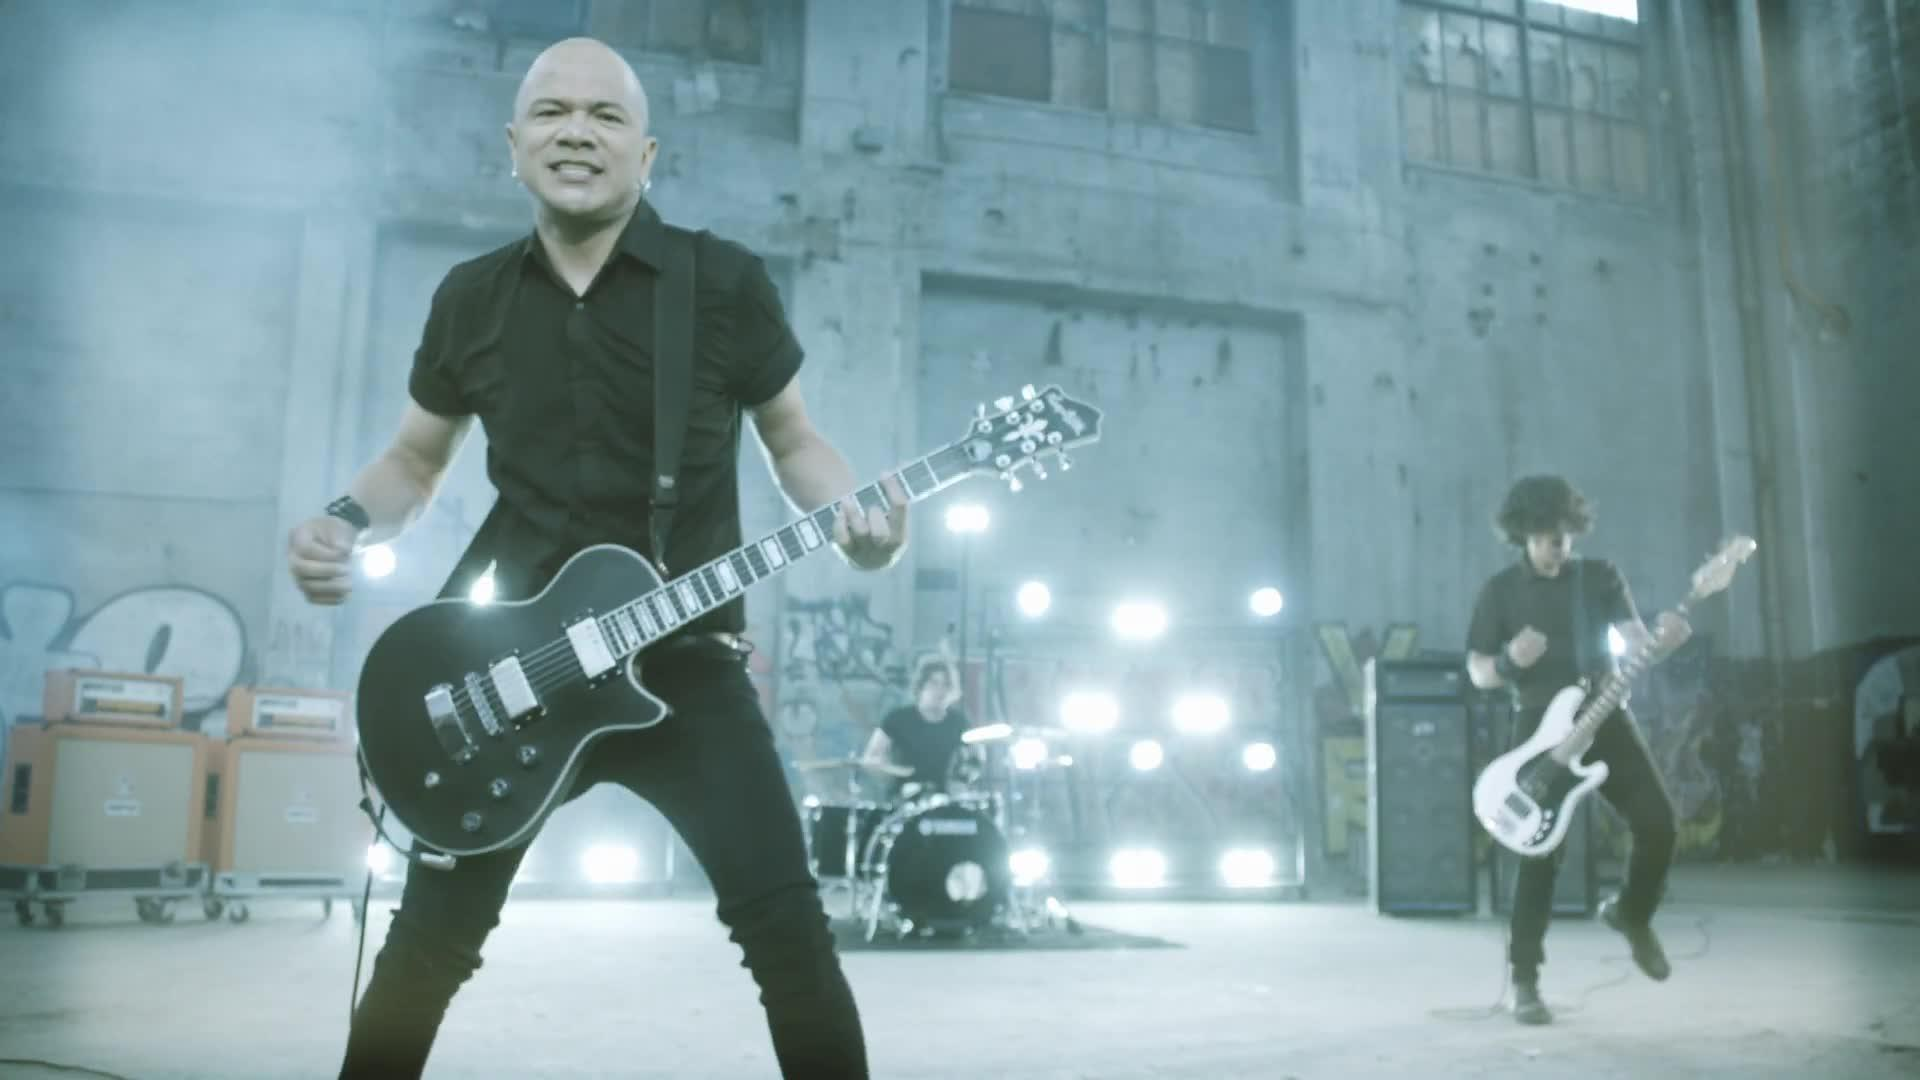 Danko Jones - Fists Up High